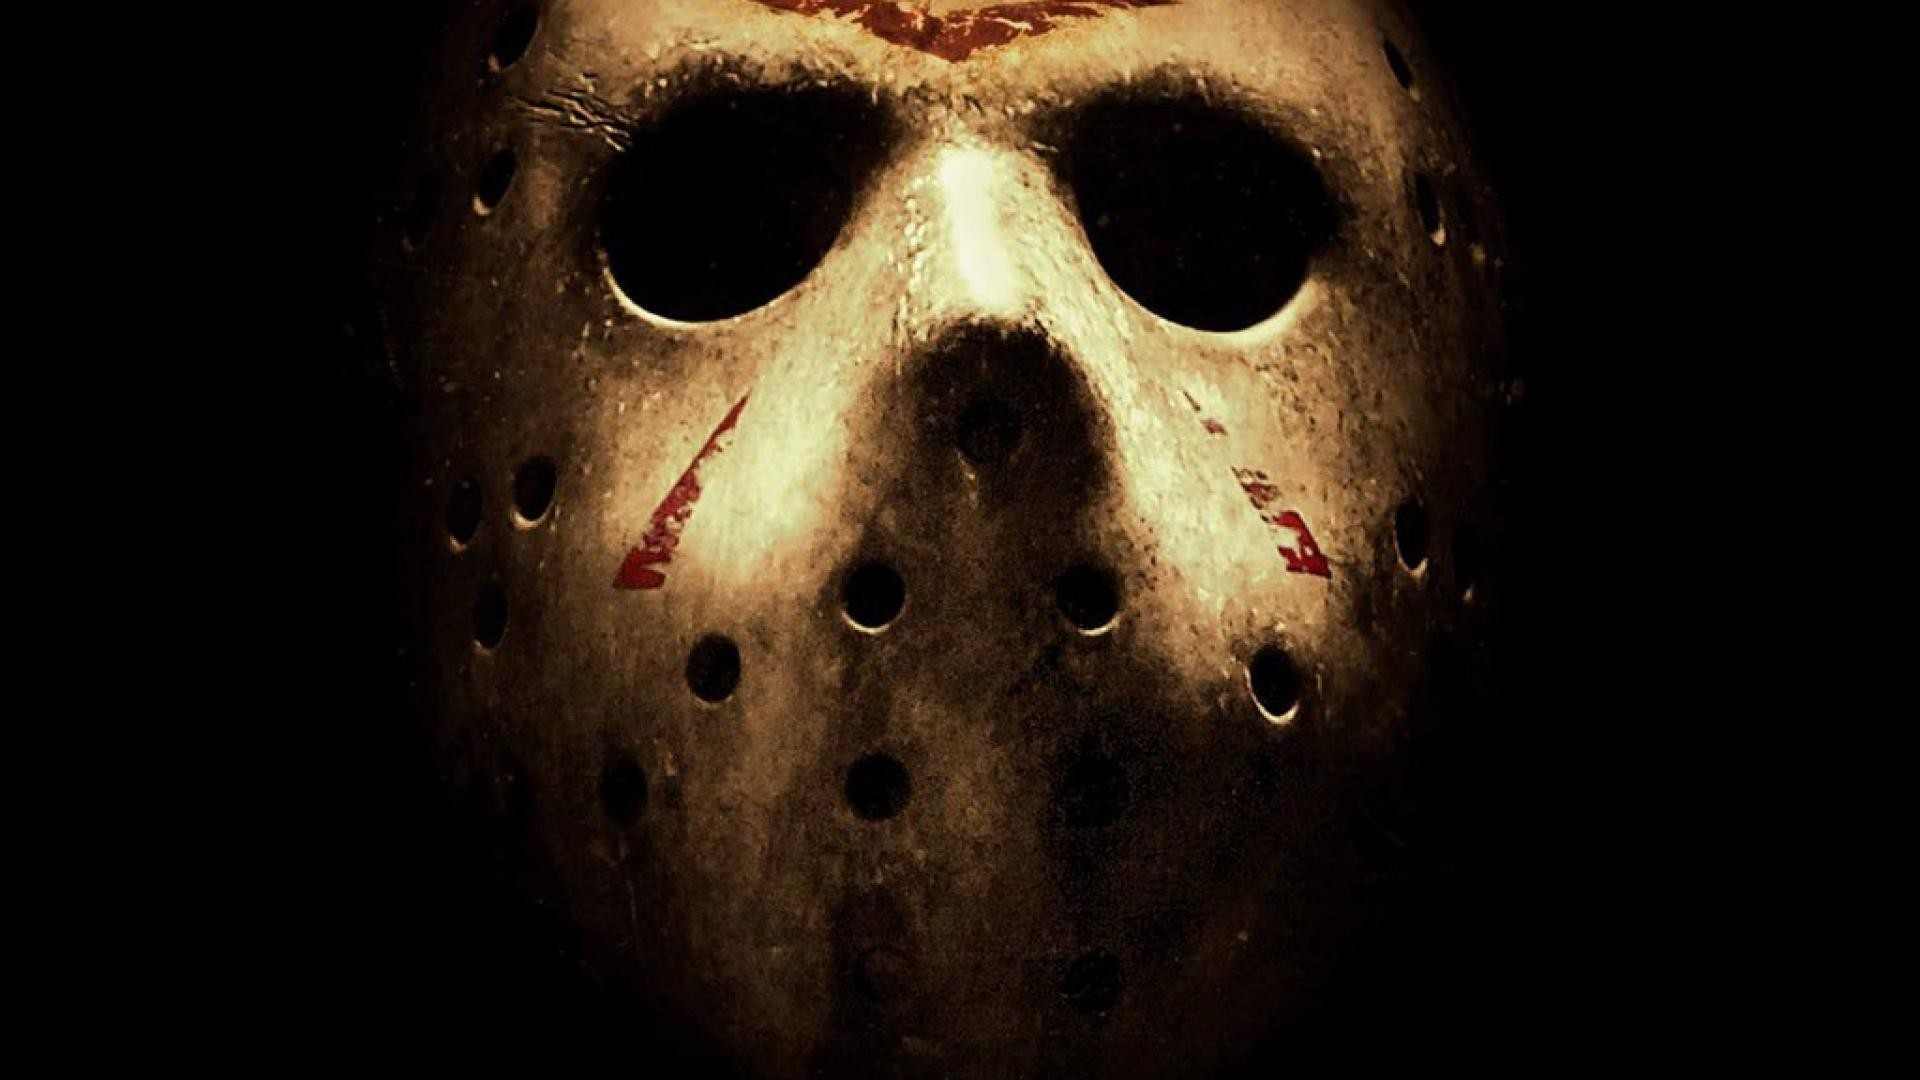 horror movies wallpaper iphone (44+ images)